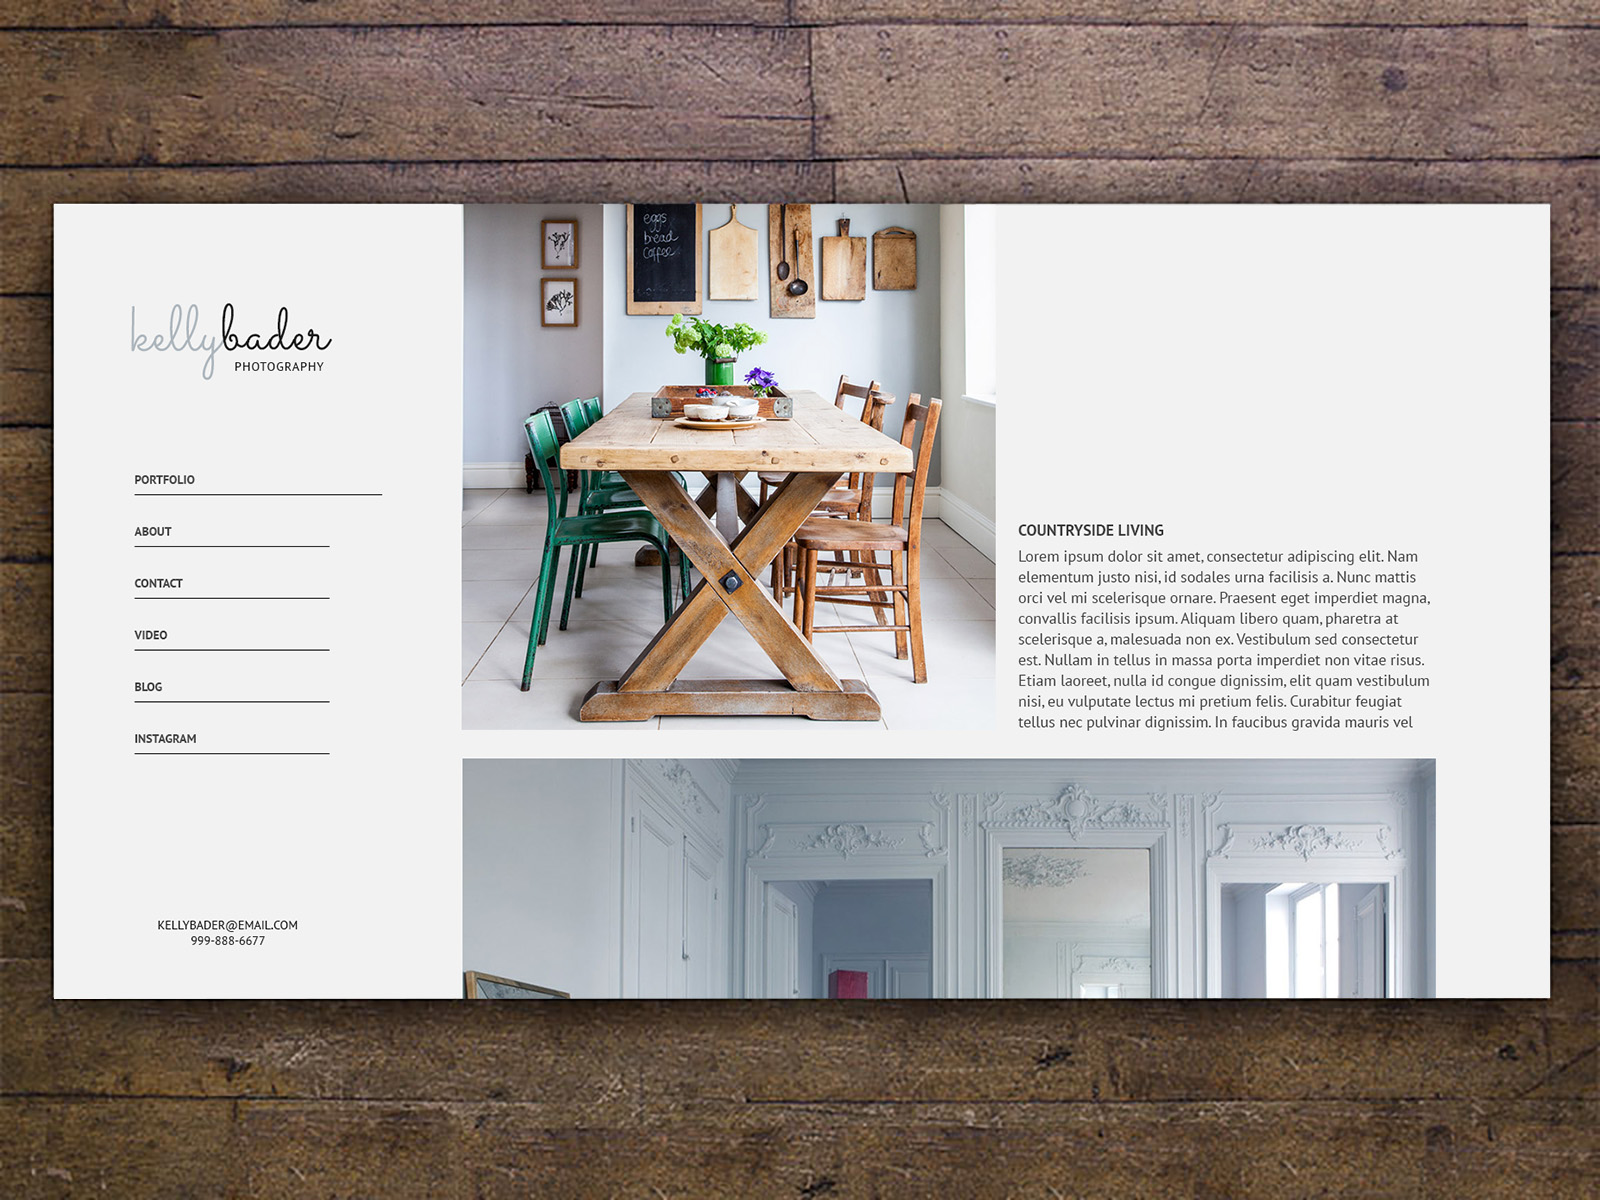 Photography portfolio with a left navigation and a collection of images in the center-right area. The portfolio image on screen is of a room with a rustic wooden table and chairs. The entire portfolio is superimposed on a wooden texture.